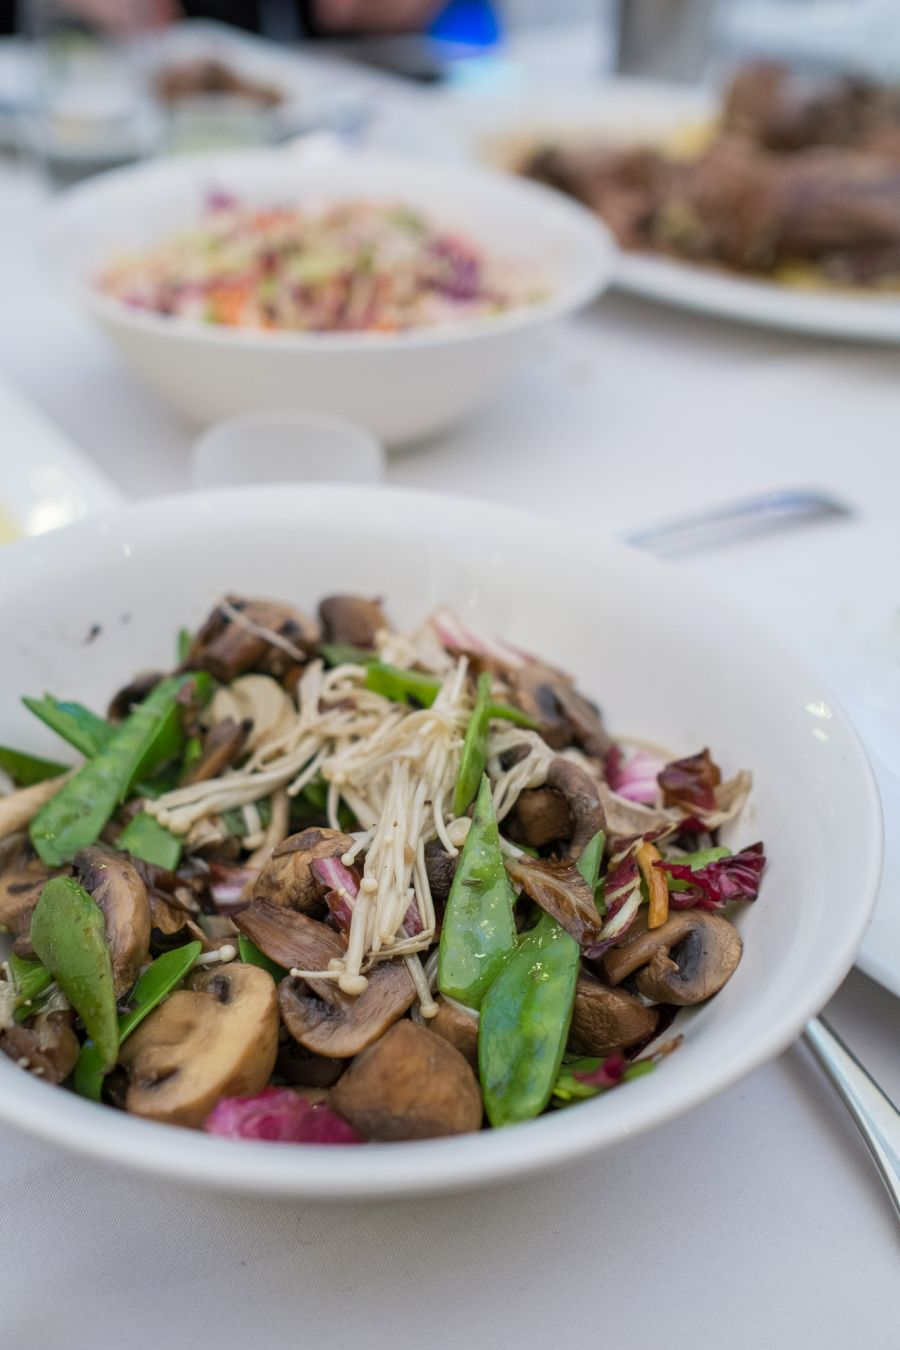 Warm salad of wild mushroom, radicchio and snow peas